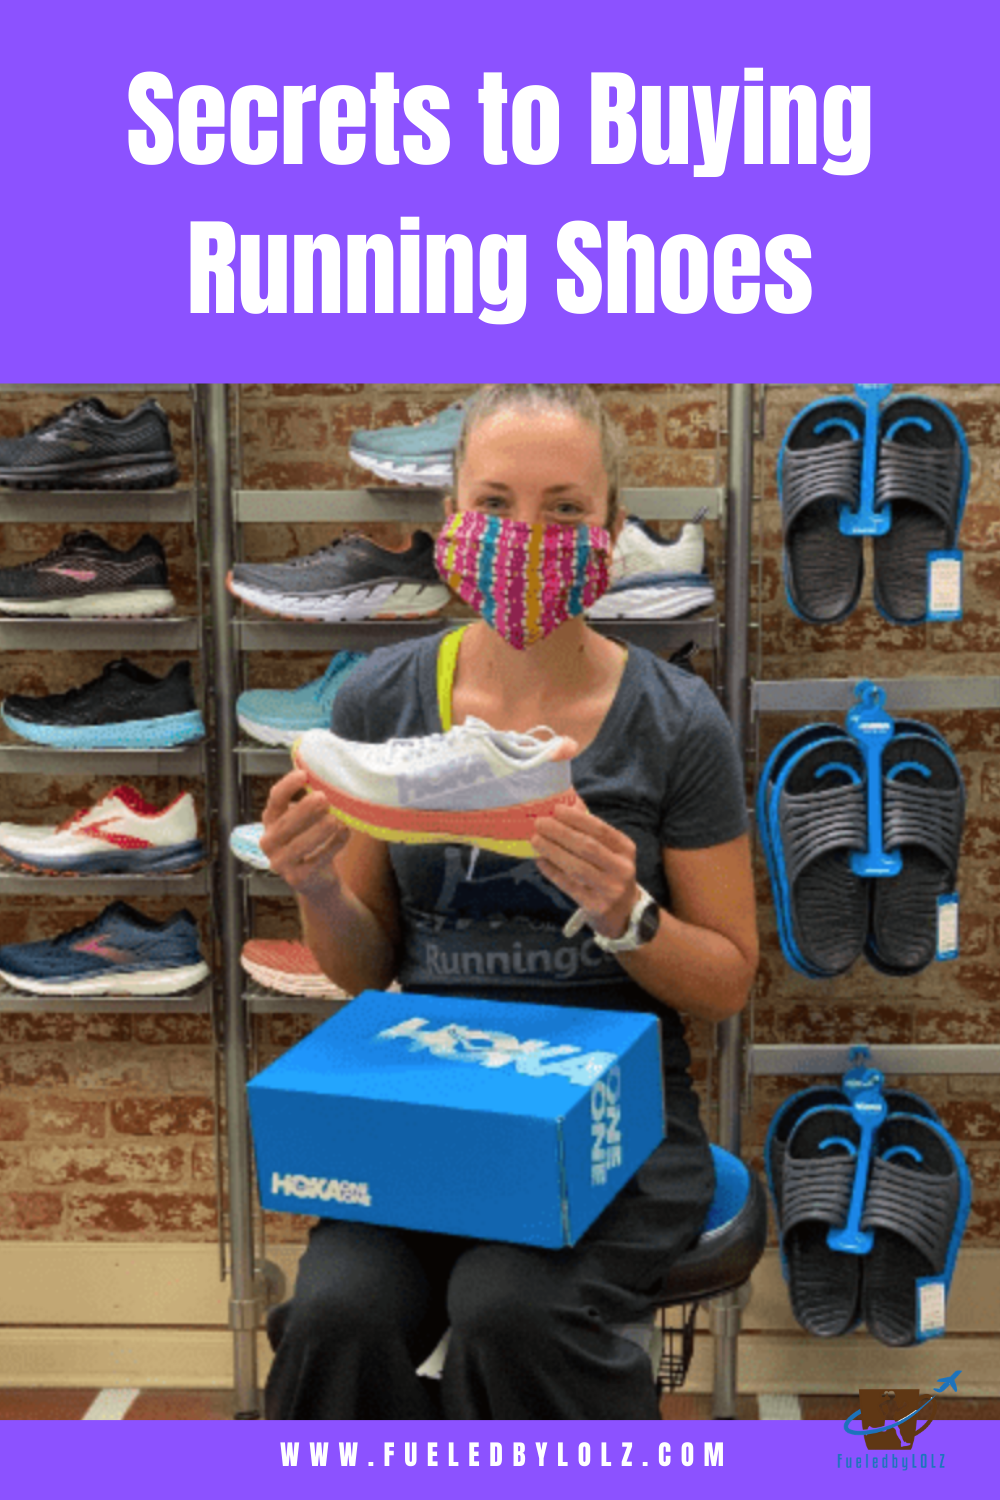 Secrets to buying running shoes